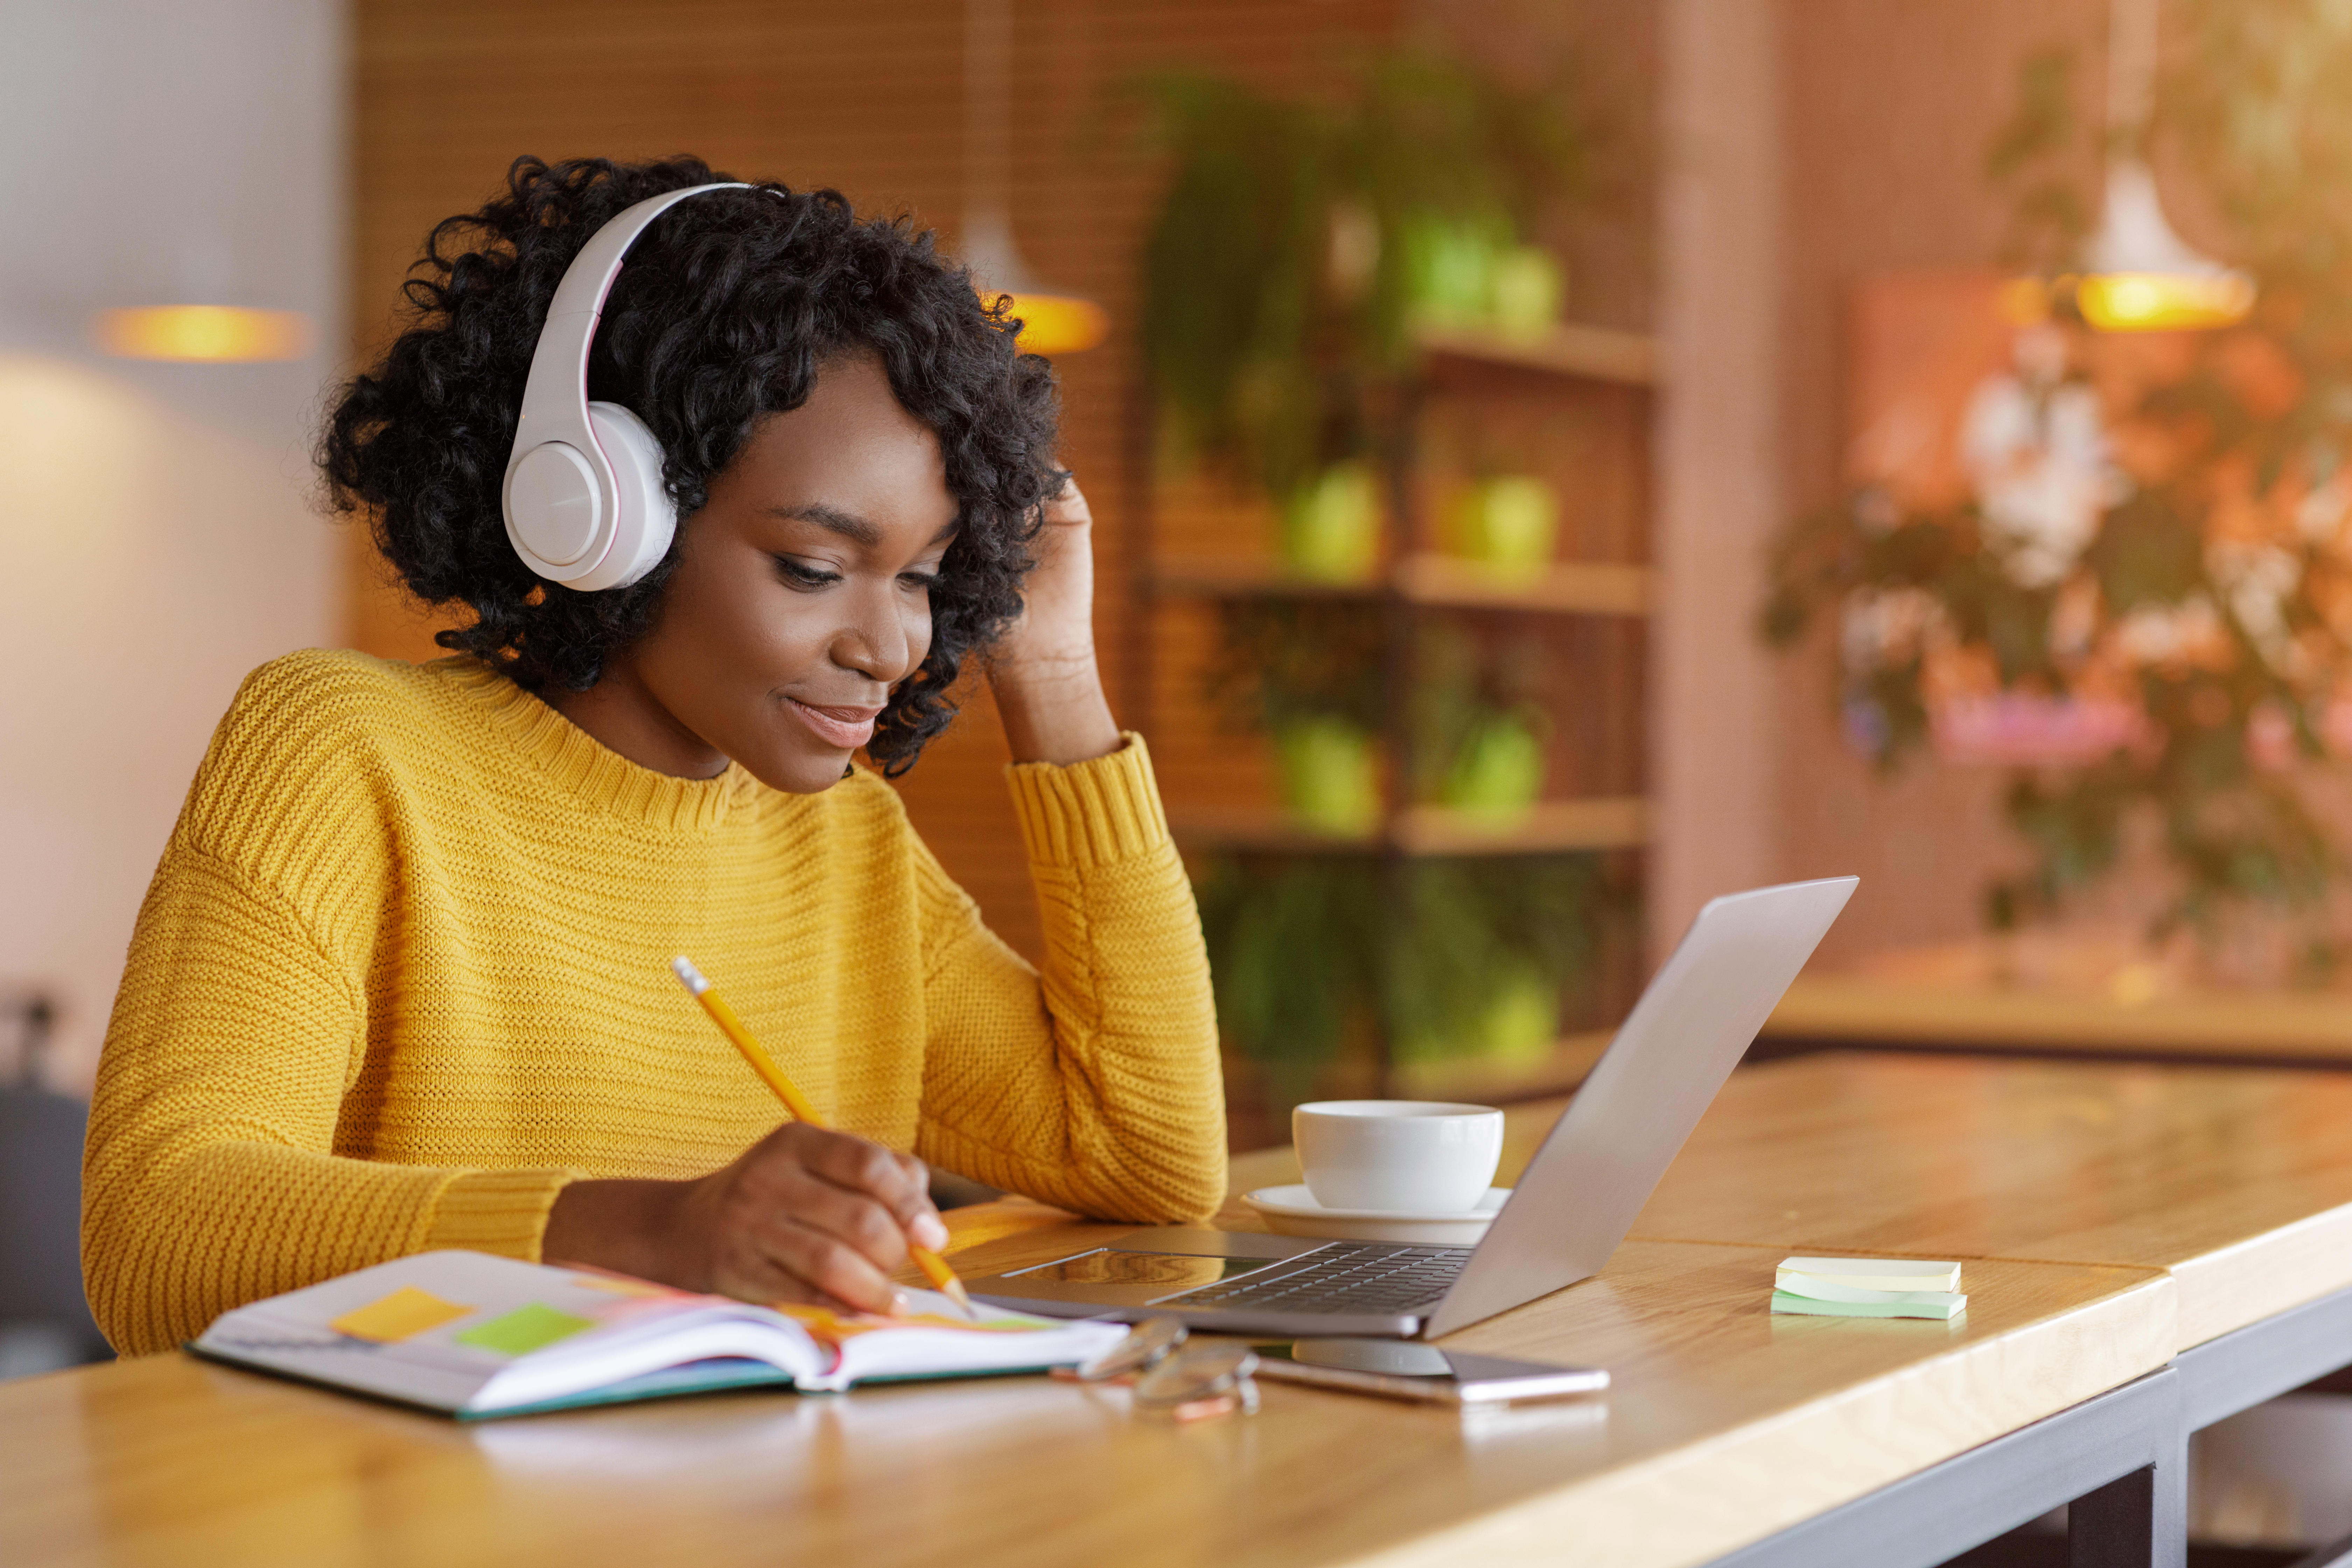 smiling-black-girl-with-headset-studying-online-us-ZB9E52C